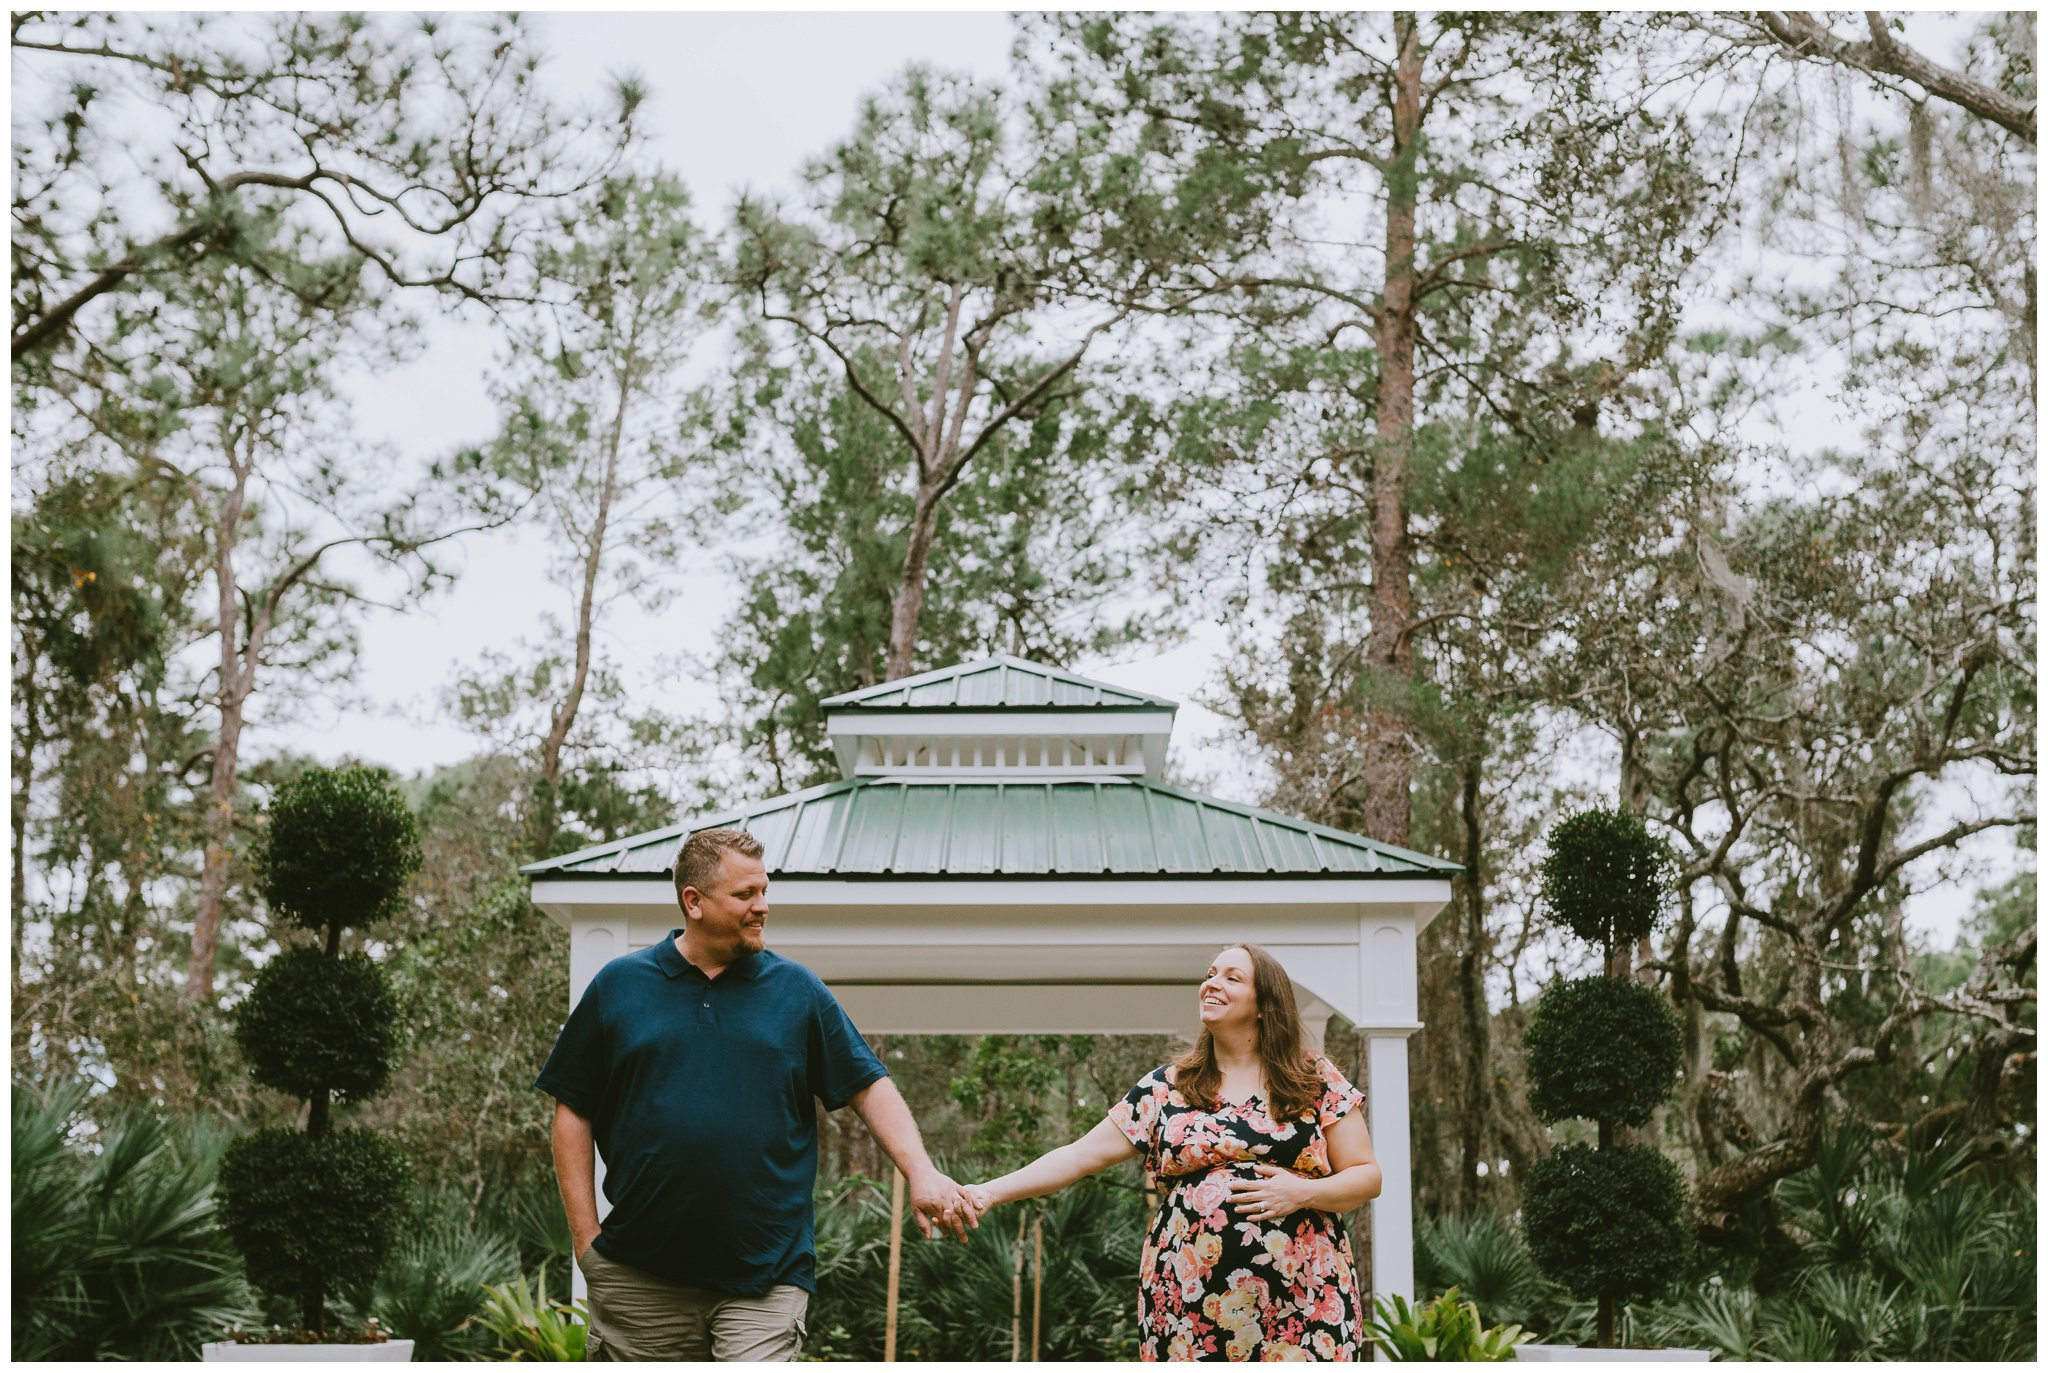 Kimberly Smith Photography| Port St Lucie Botanical Gardens| Maternity Photos| Jupiter Florida Photographer | Stuart Fl photographer_0195.jpg